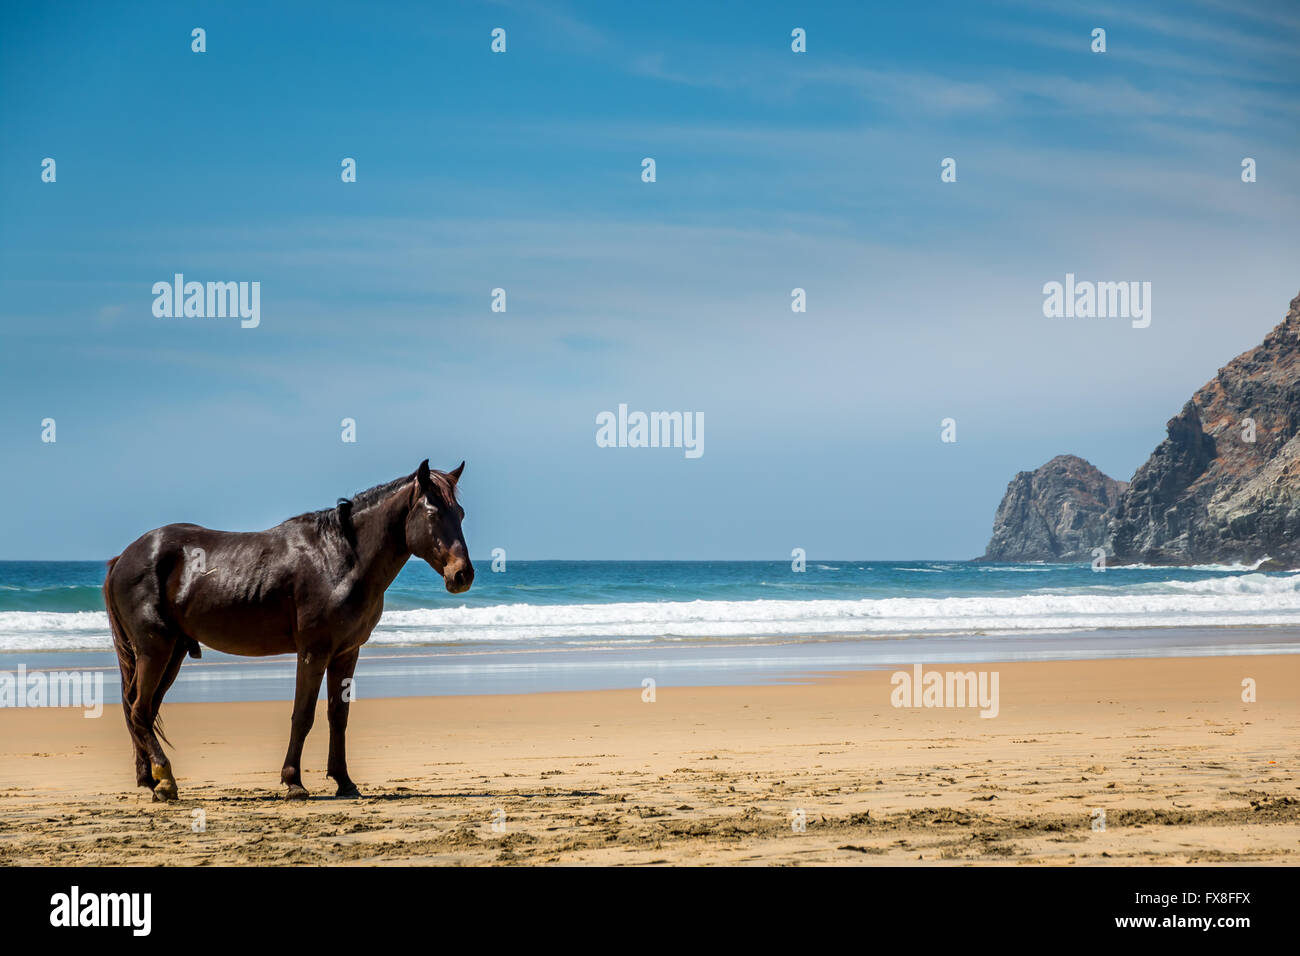 A lone stallion pauses on a remote beach in Baja Mexico. - Stock Image